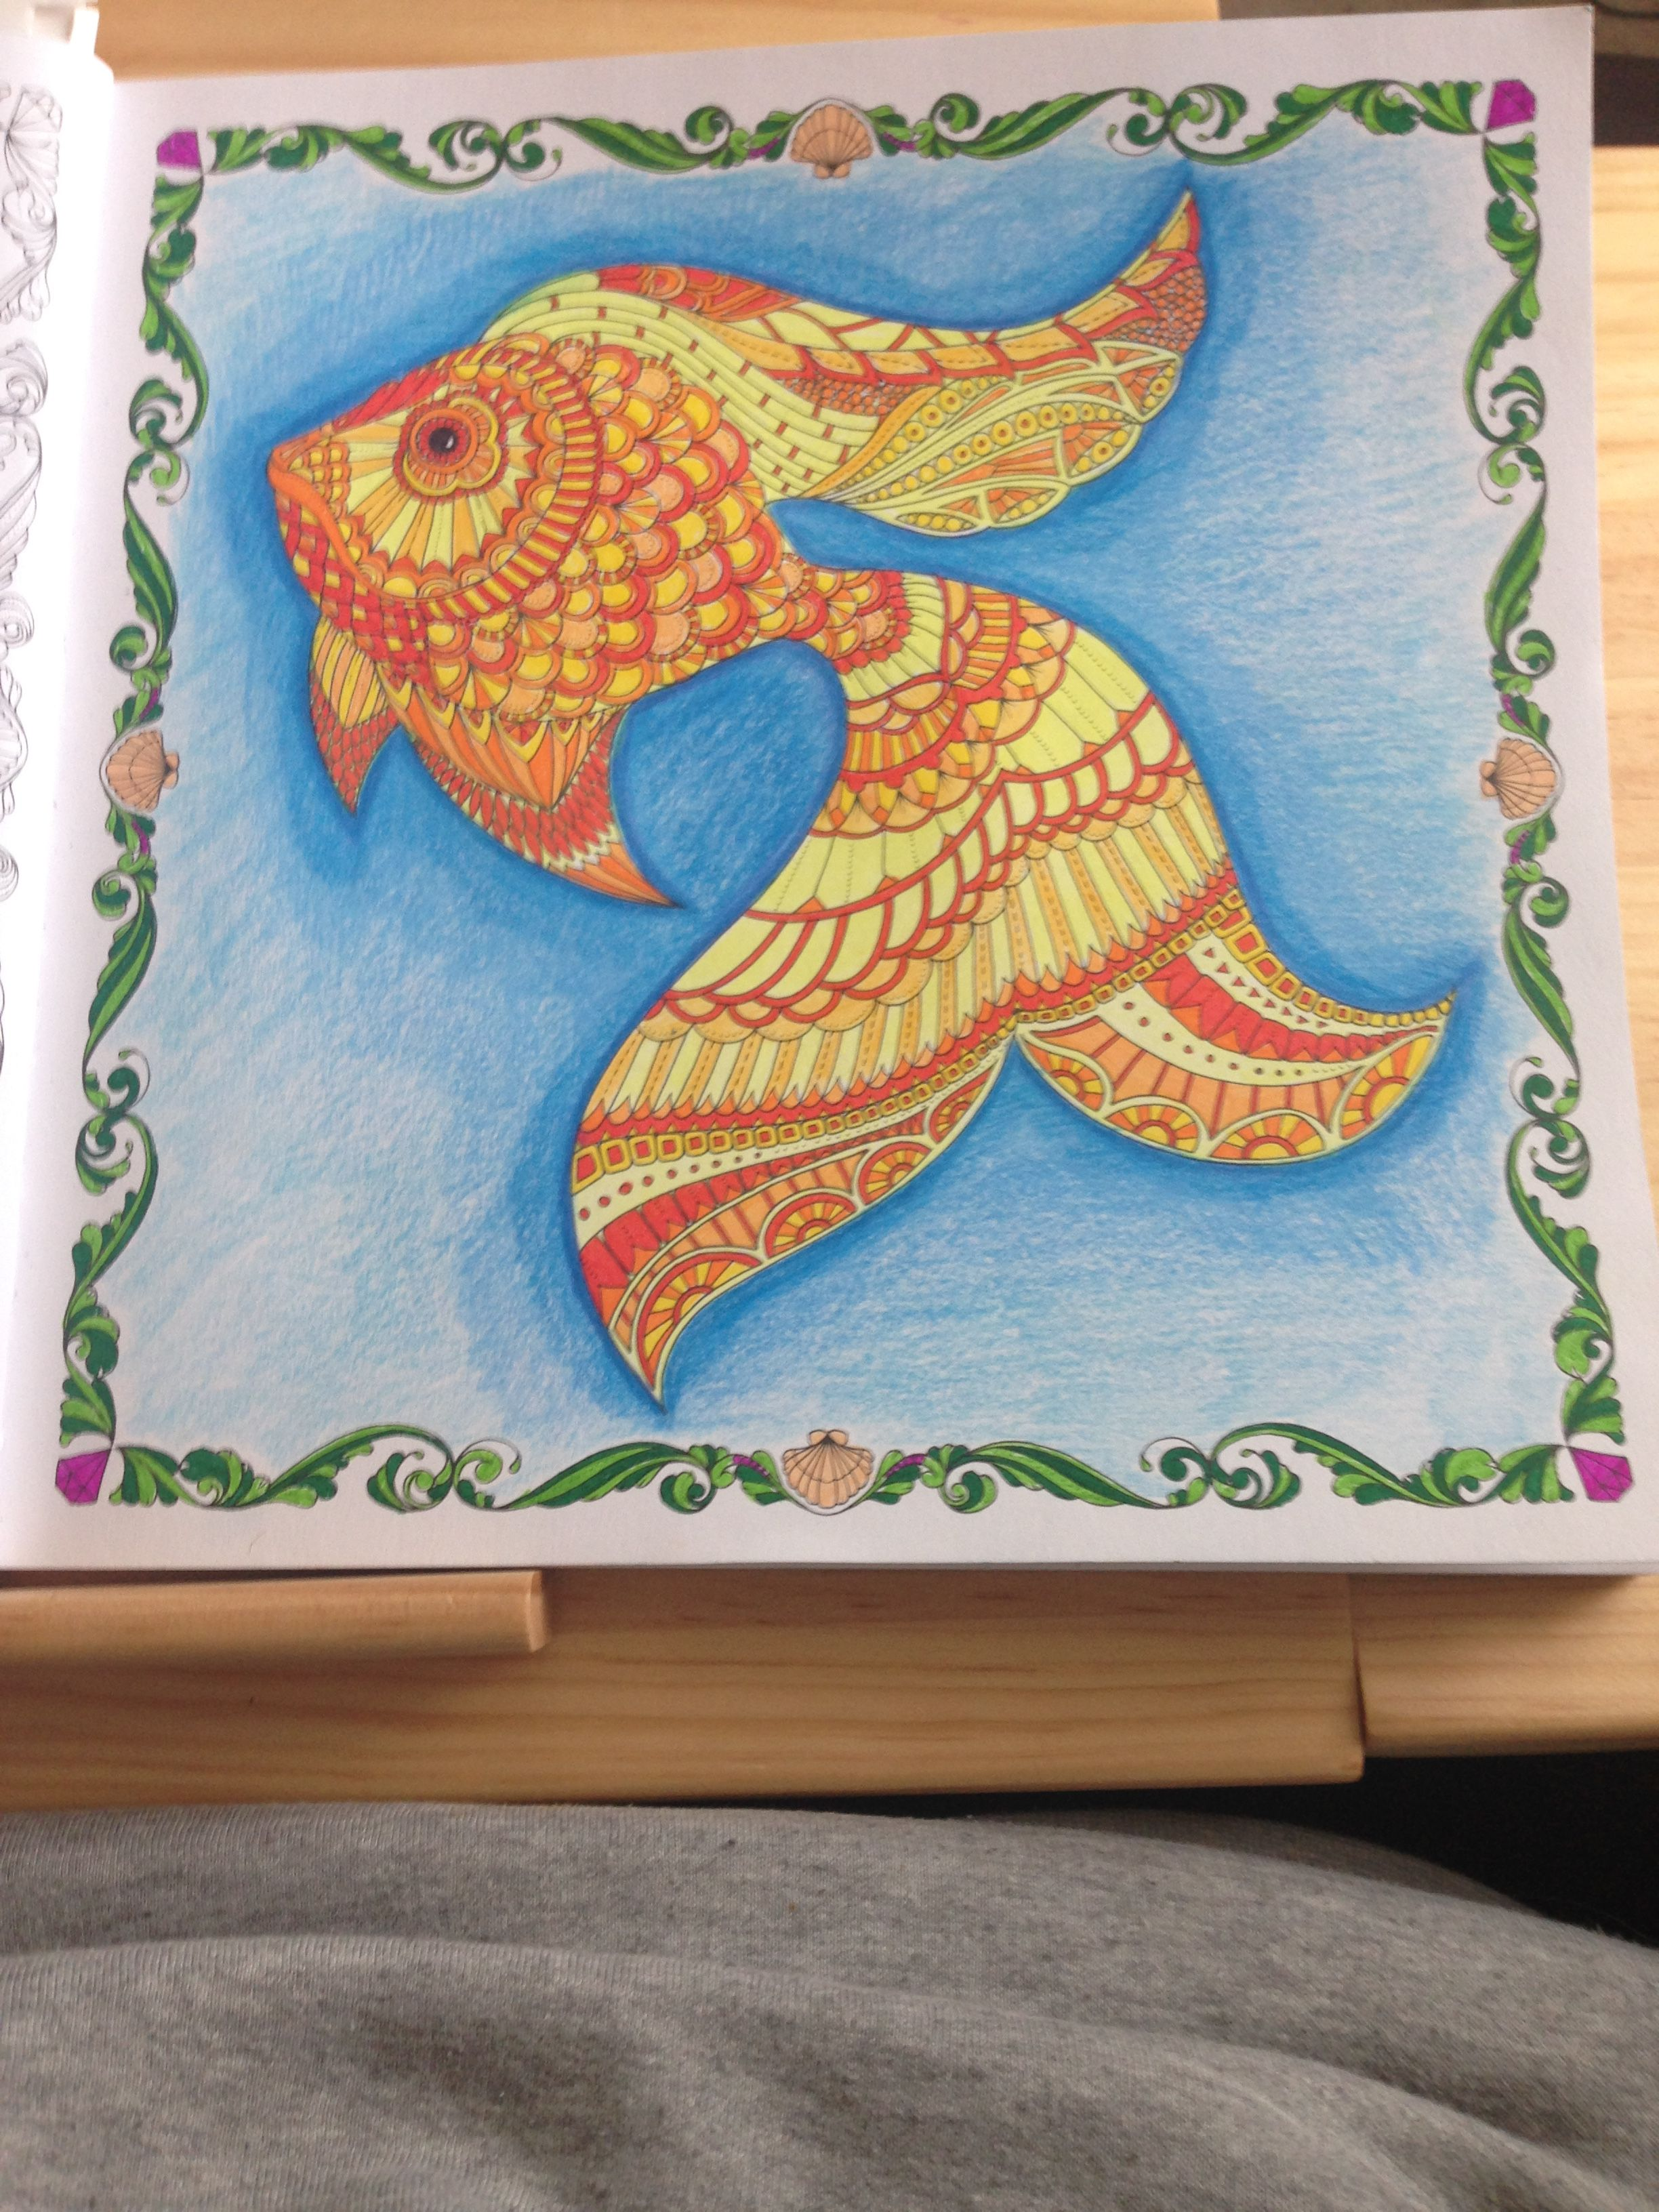 Staedtler Triplus Fineliners Whsmith Pencil For Background Lost Ocean By Johanna Basford